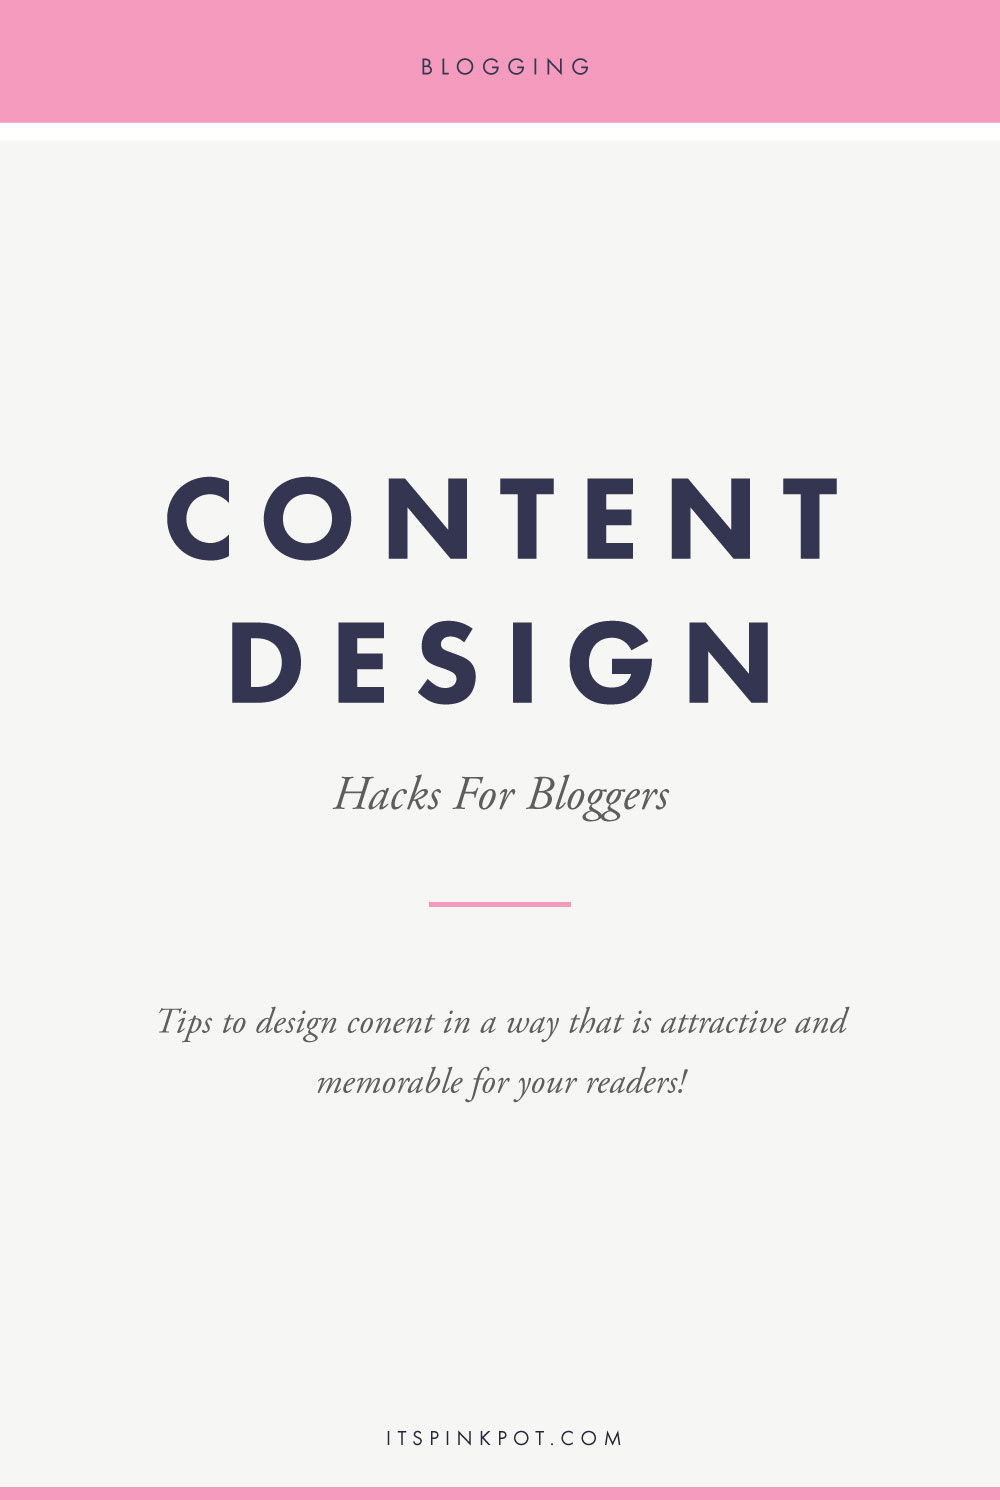 Designing your content in a way that is easily digestible and memorable for your readers is very important! Here are a few content design hacks to help you create great content!